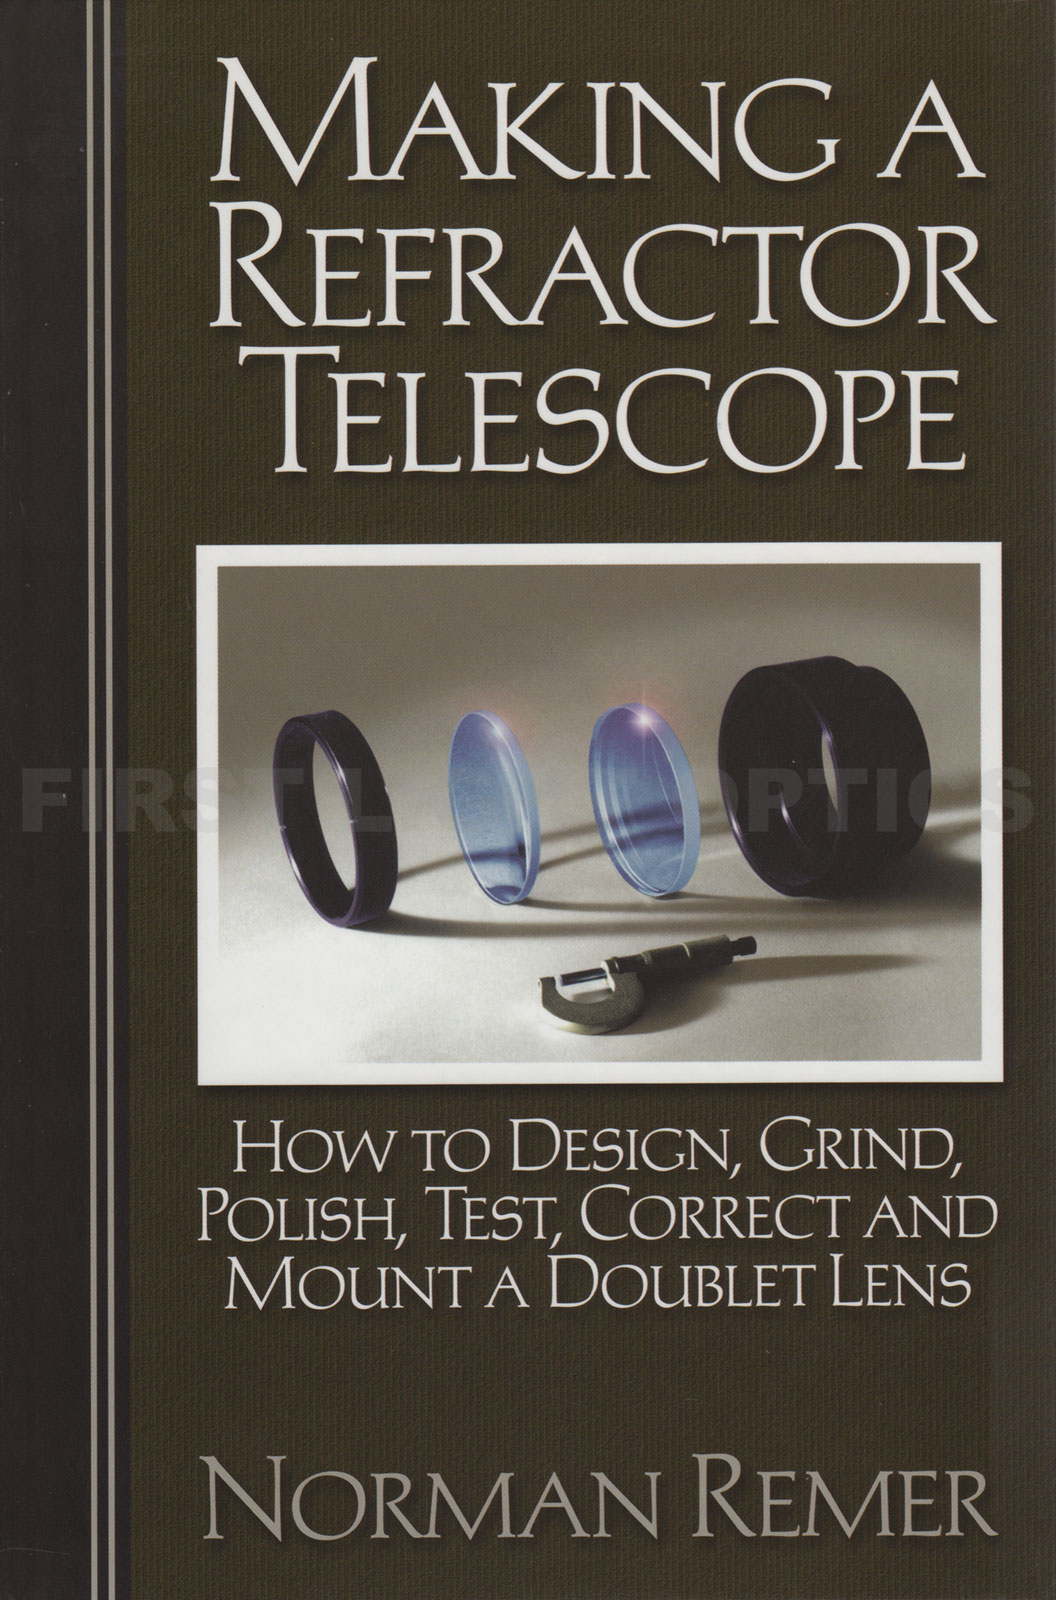 Making a Refractor Telescope